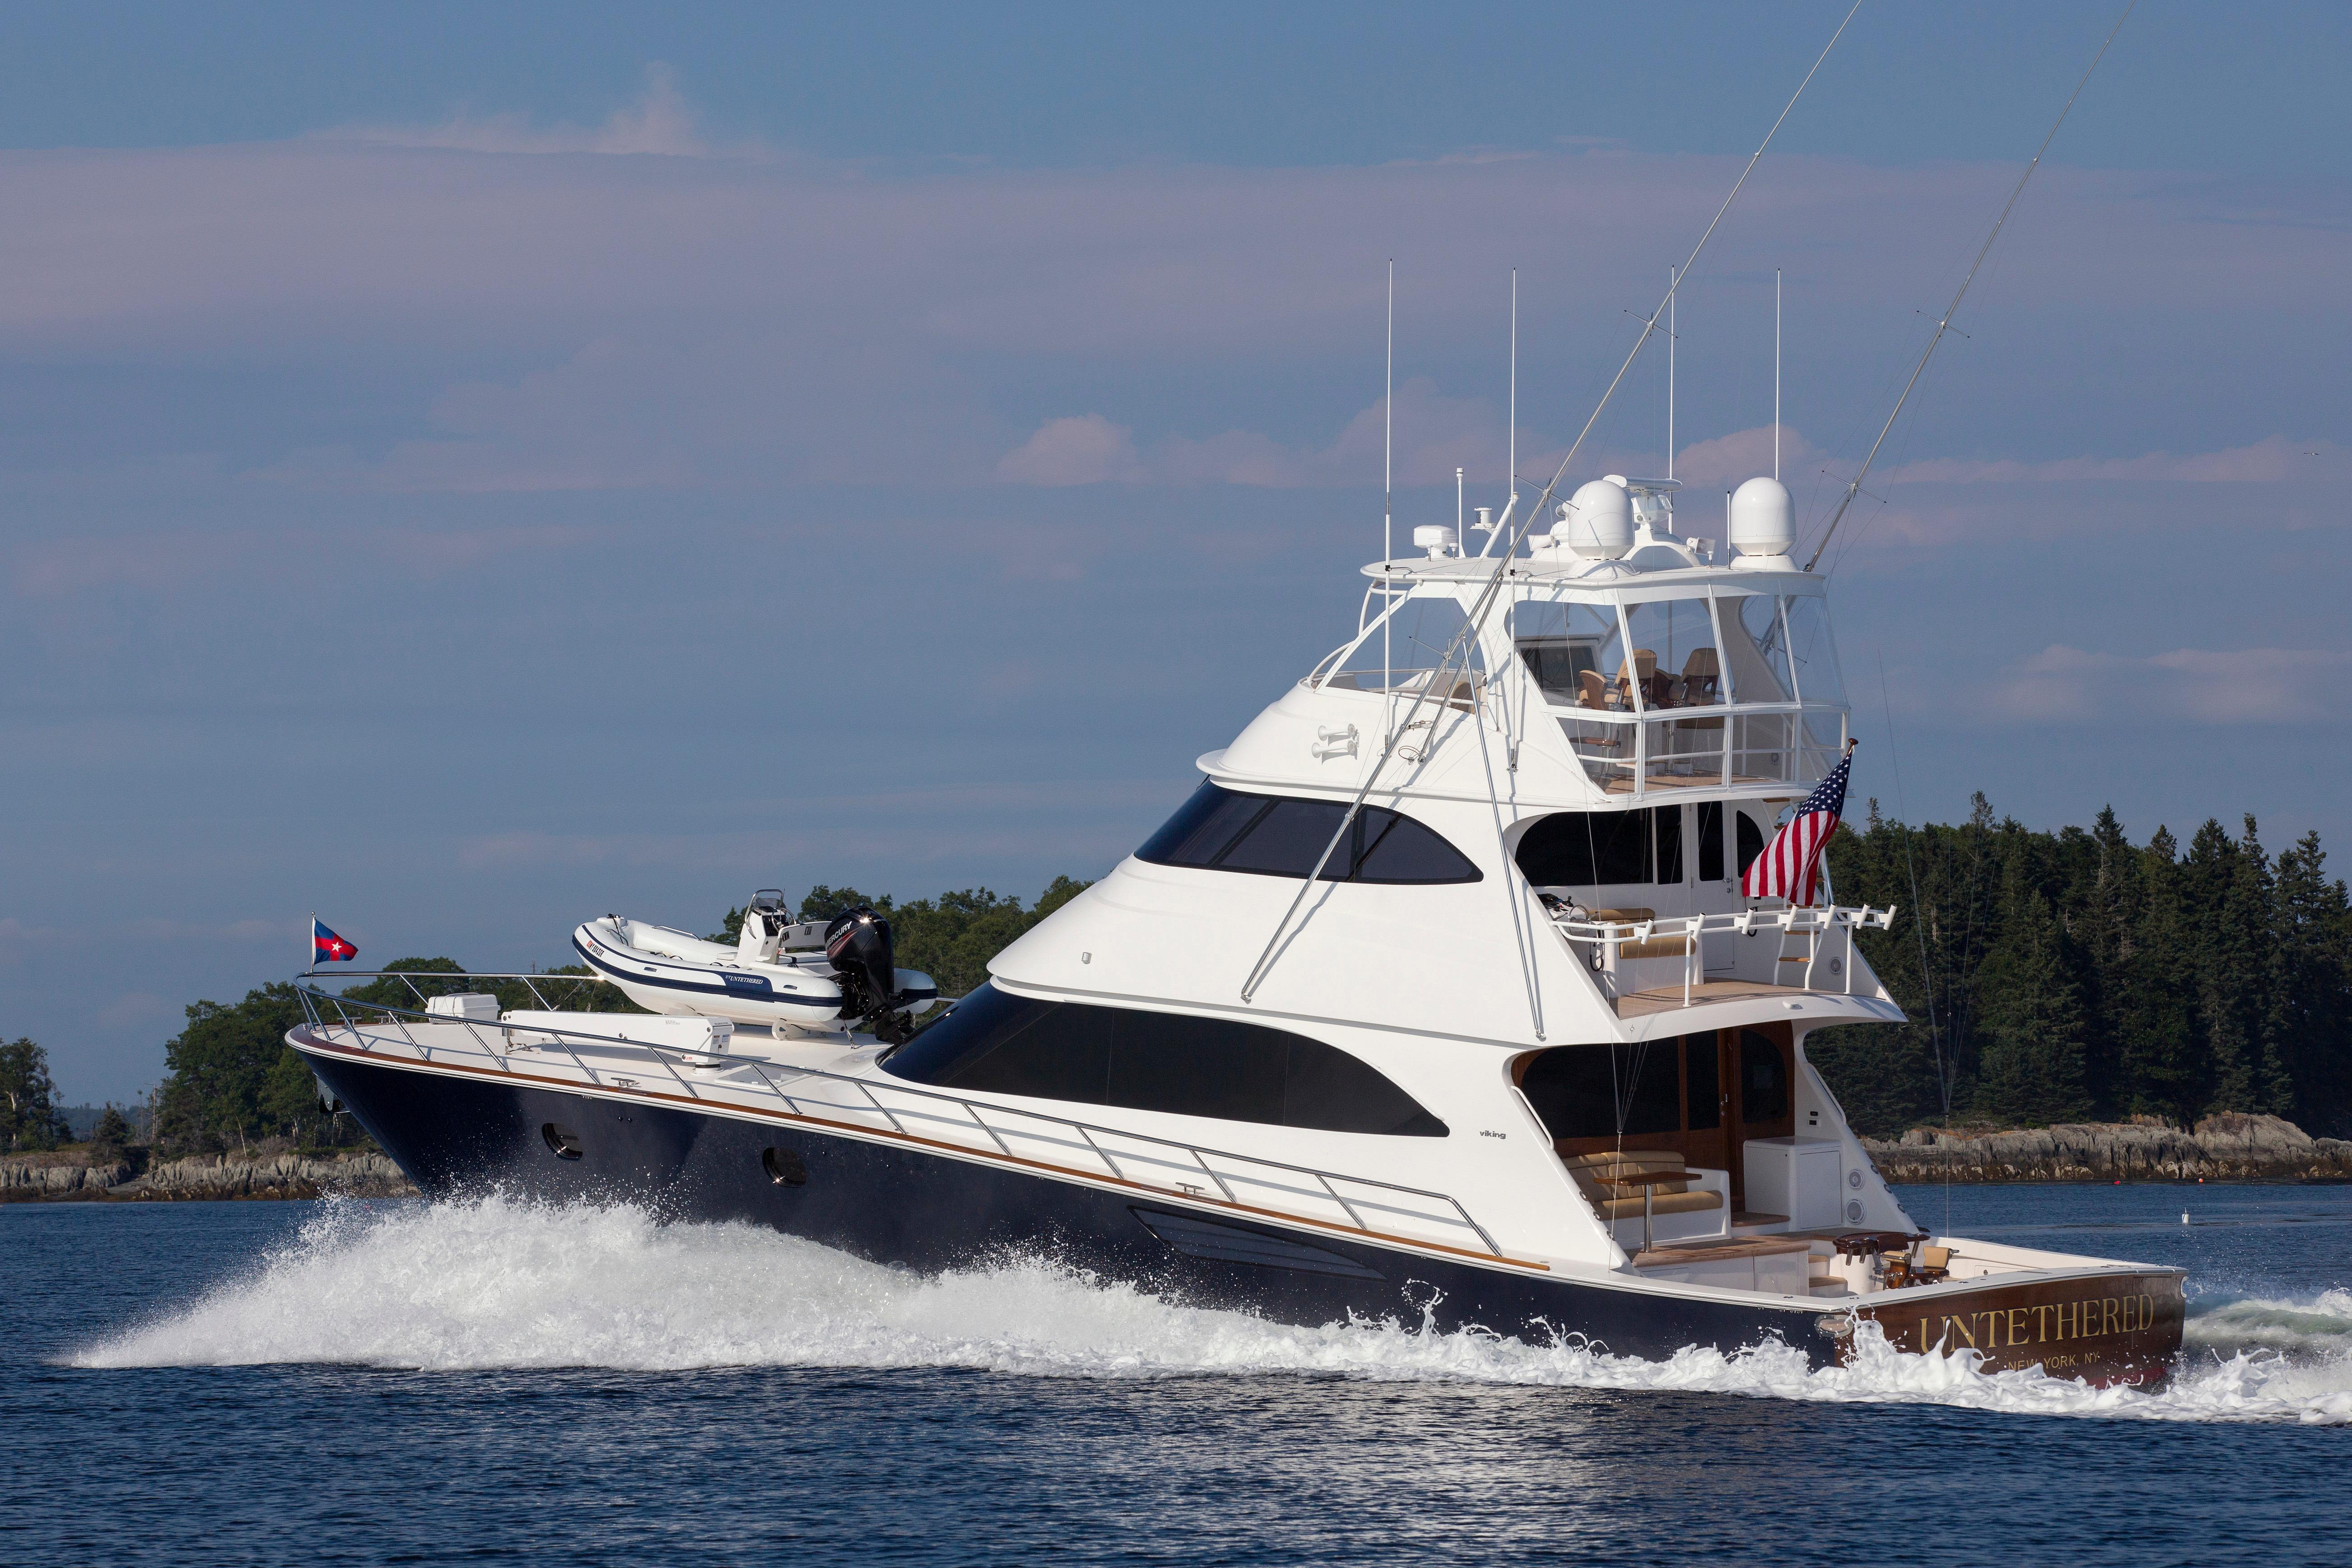 82 viking yacht 2016 untethered for sale in us for 85 viking motor yacht